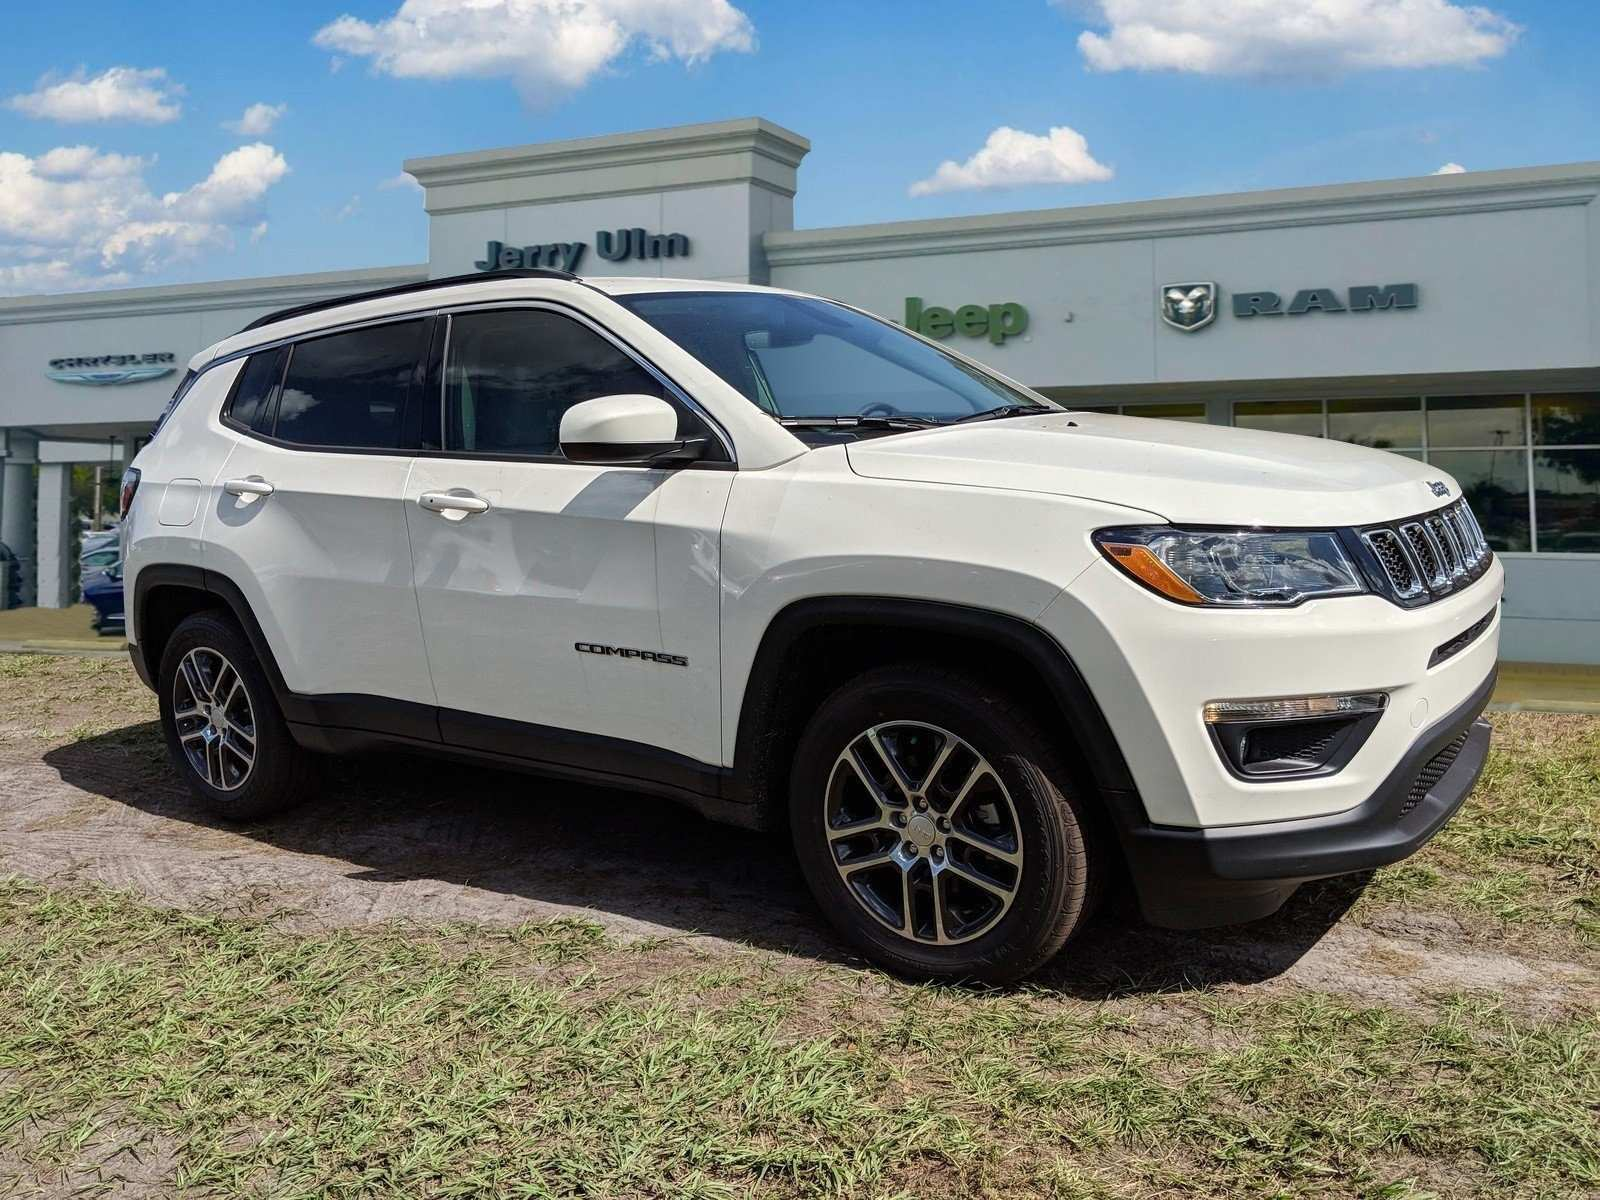 93 A 2019 Jeep Compass Release Date Price Design And Review